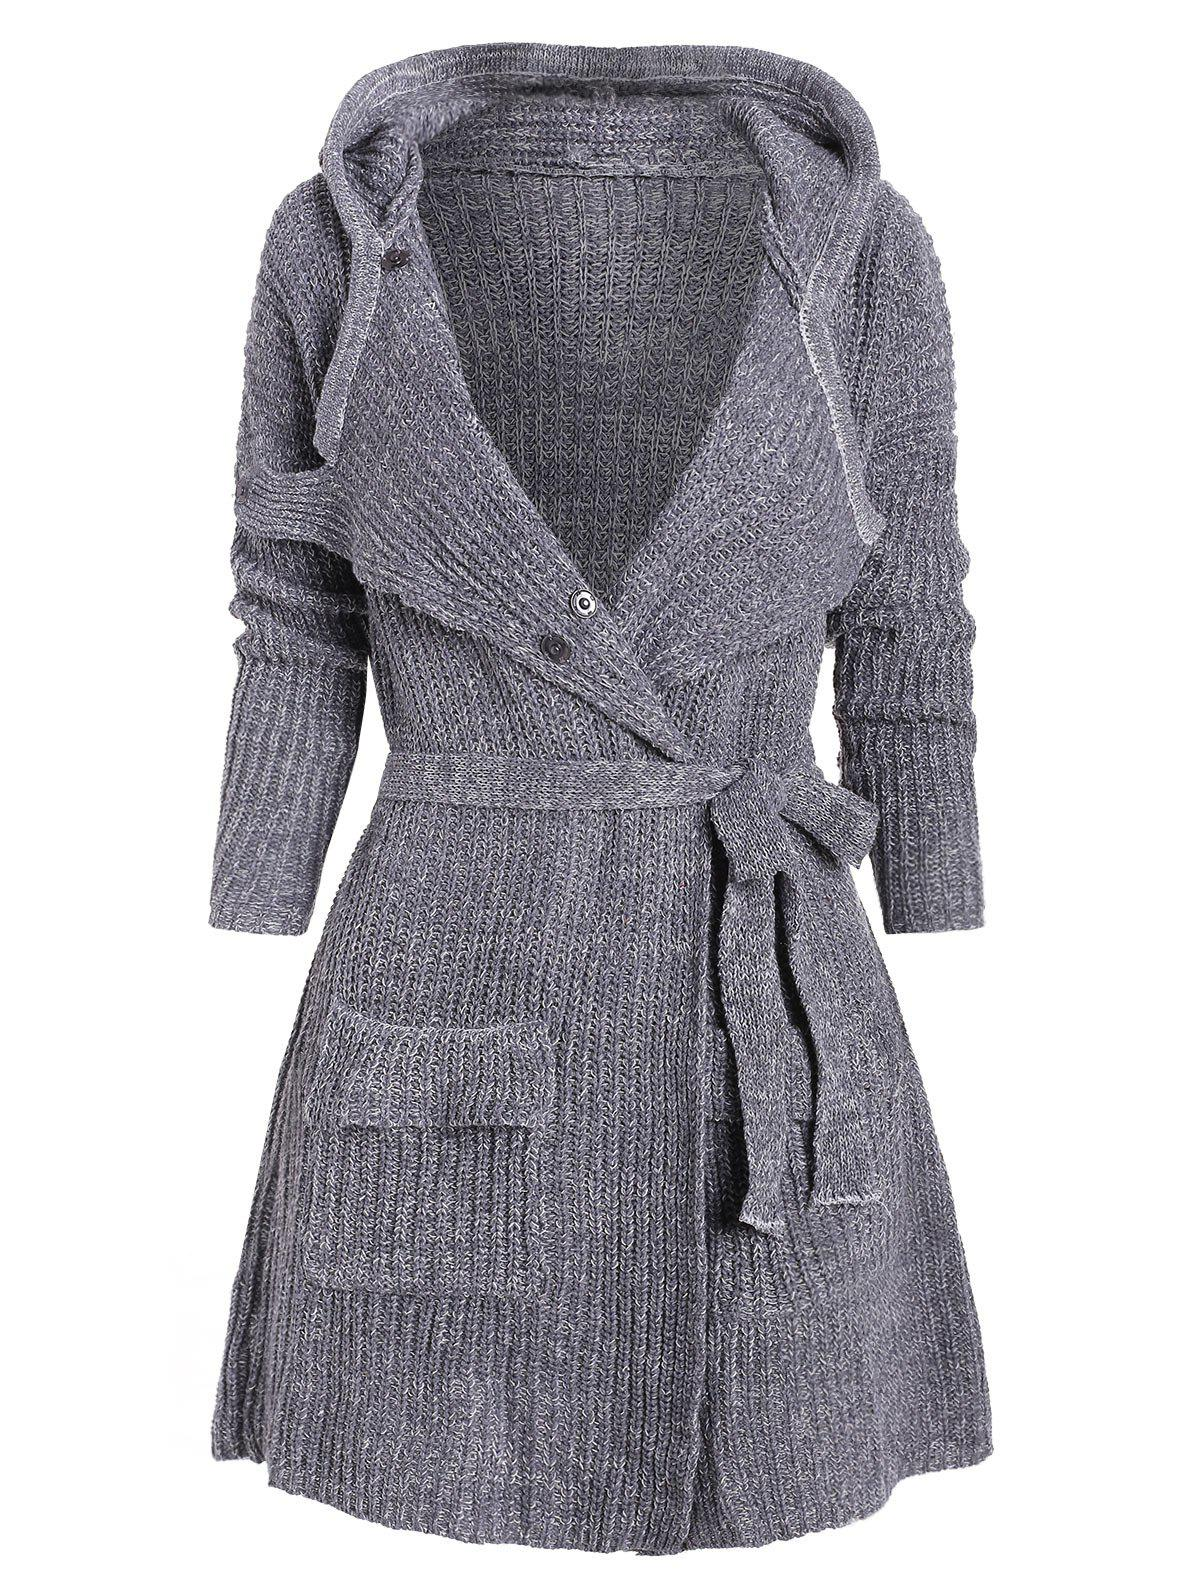 Hooded Drop Shoulder Belted Longline Cardigan - GRAY ONE SIZE